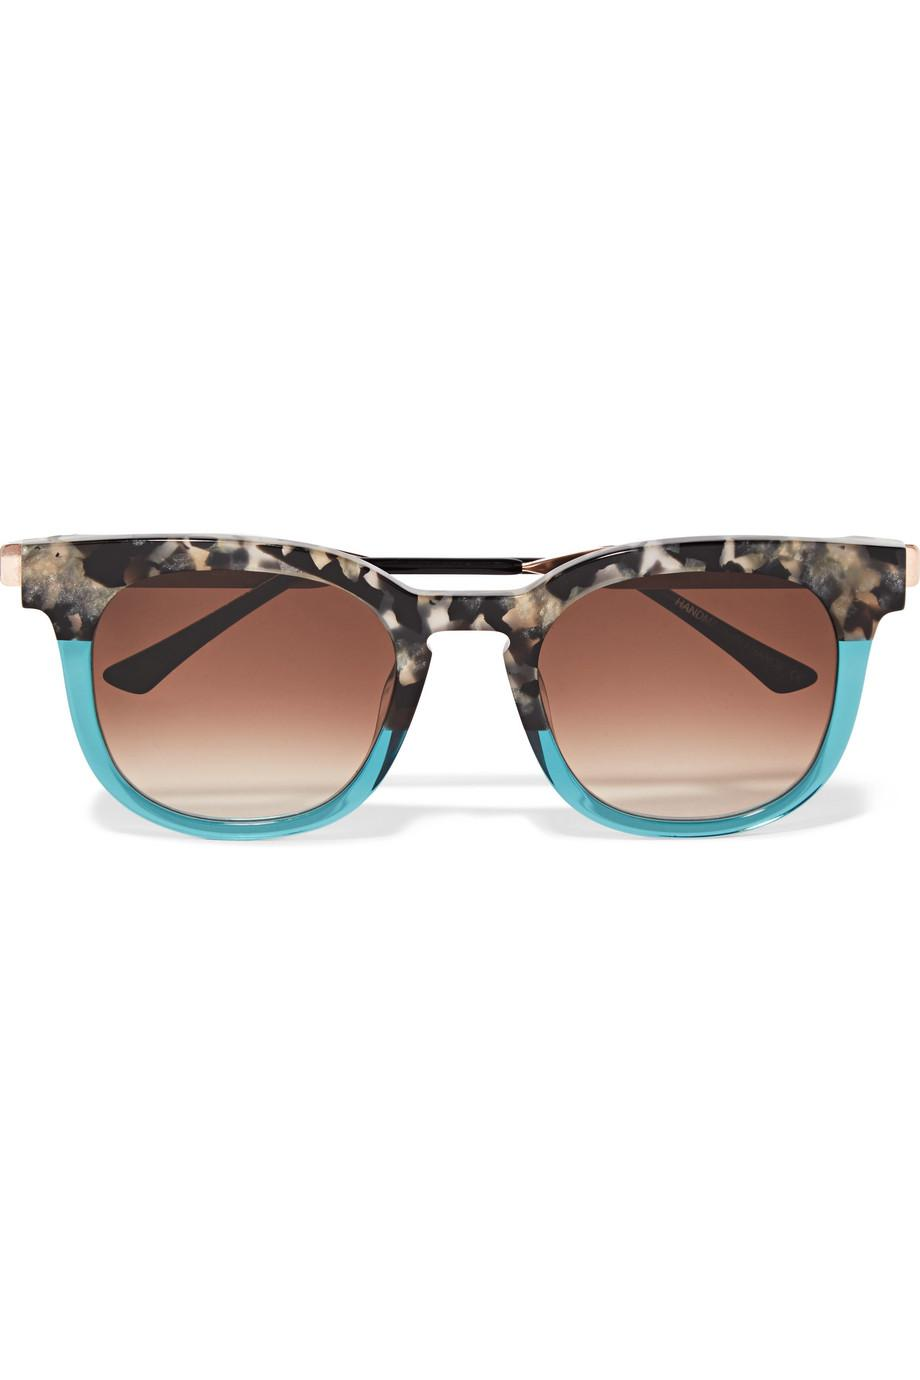 Cat-eye Two-tone Acetate And Gold-tone Sunglasses - Tortoiseshell Thierry Lasry sFT3Z